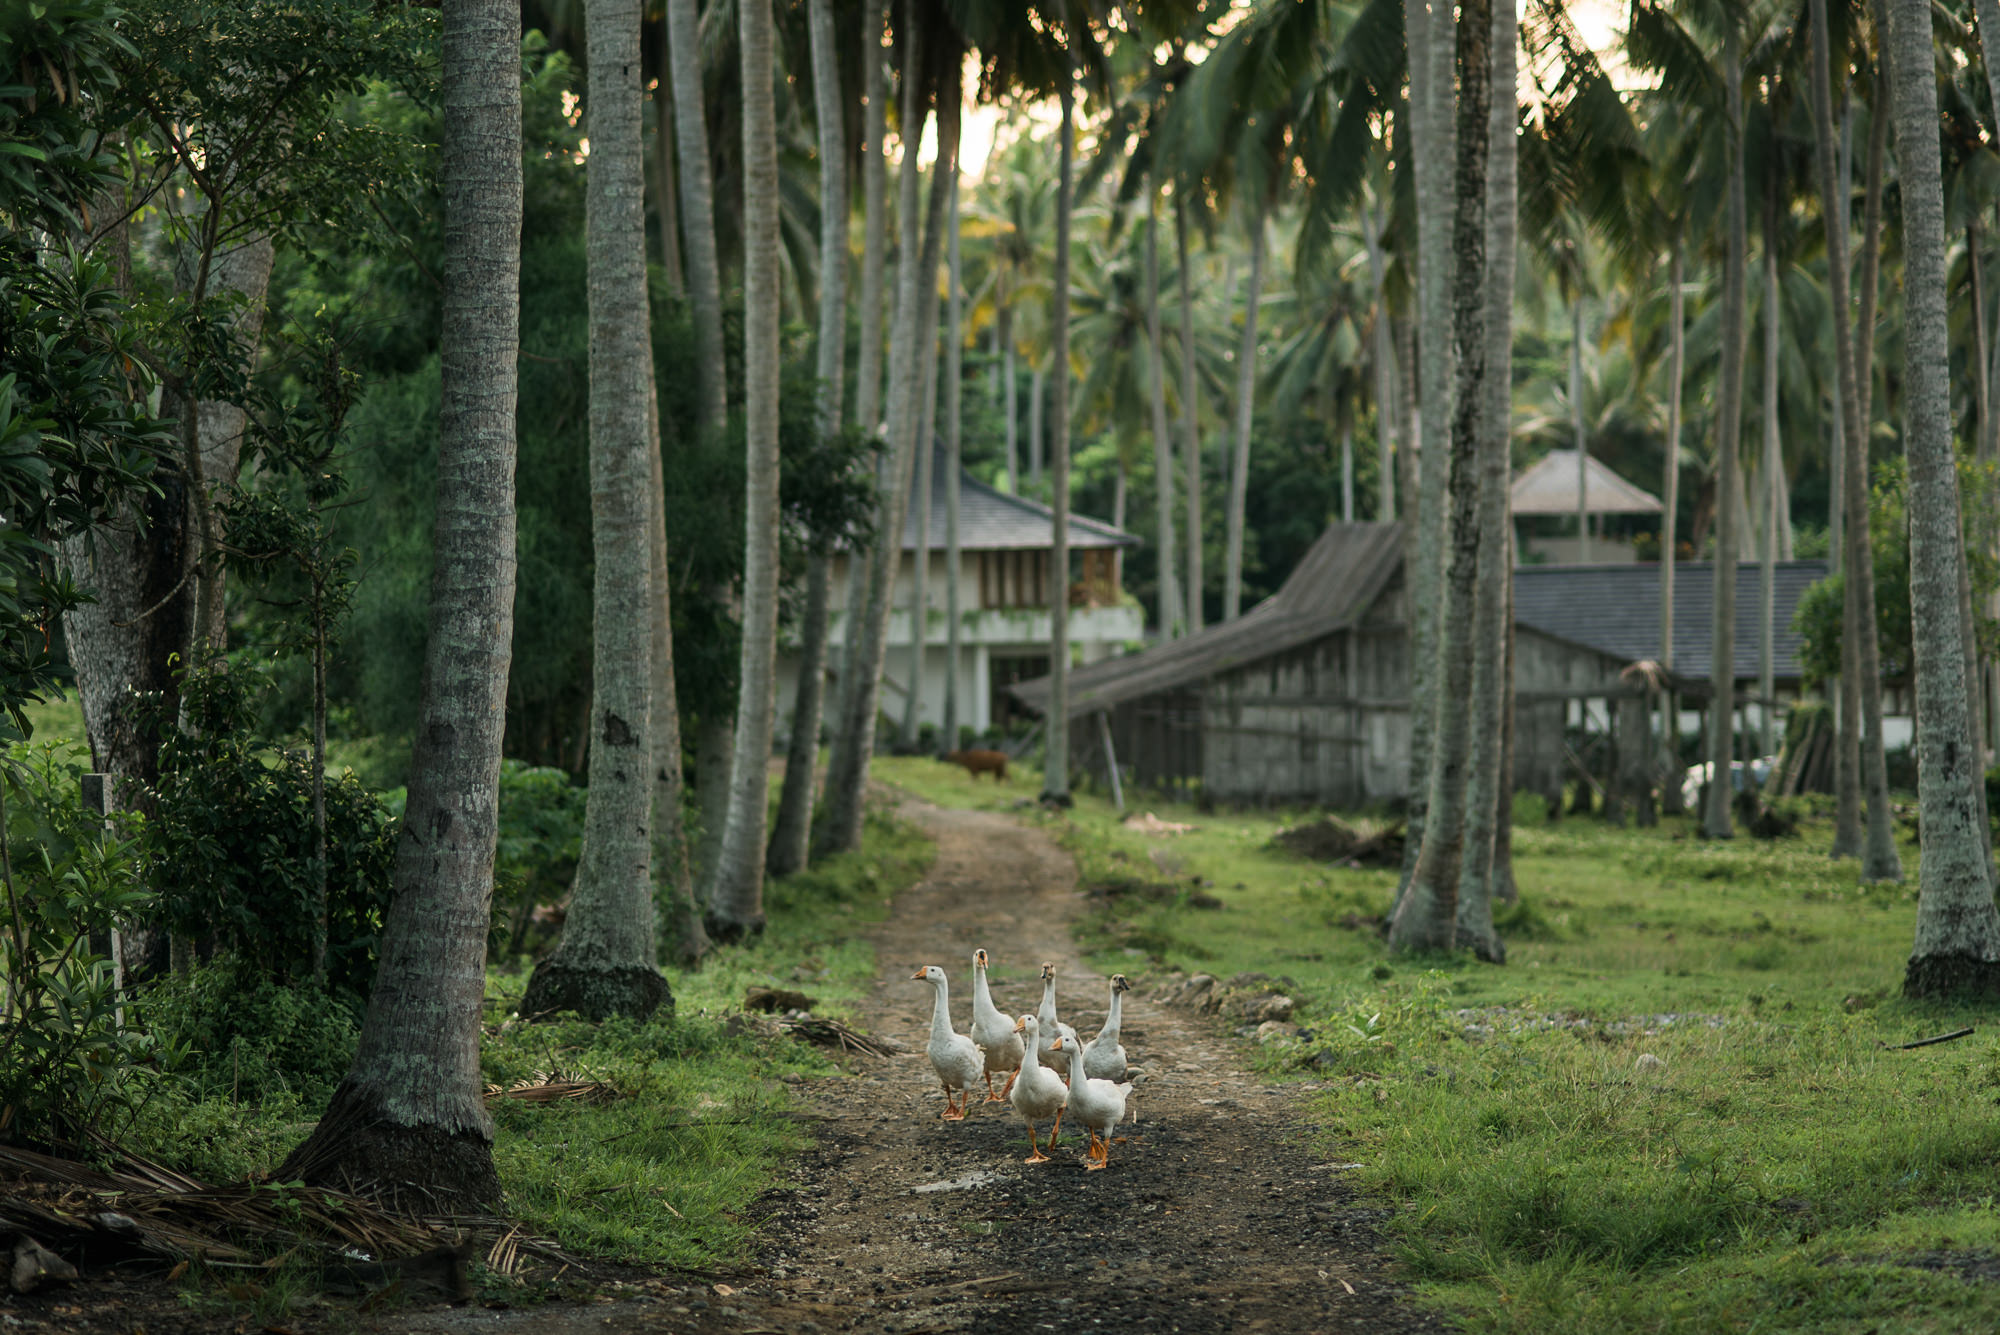 Geese walk along tropical path photo by Nordica Photography